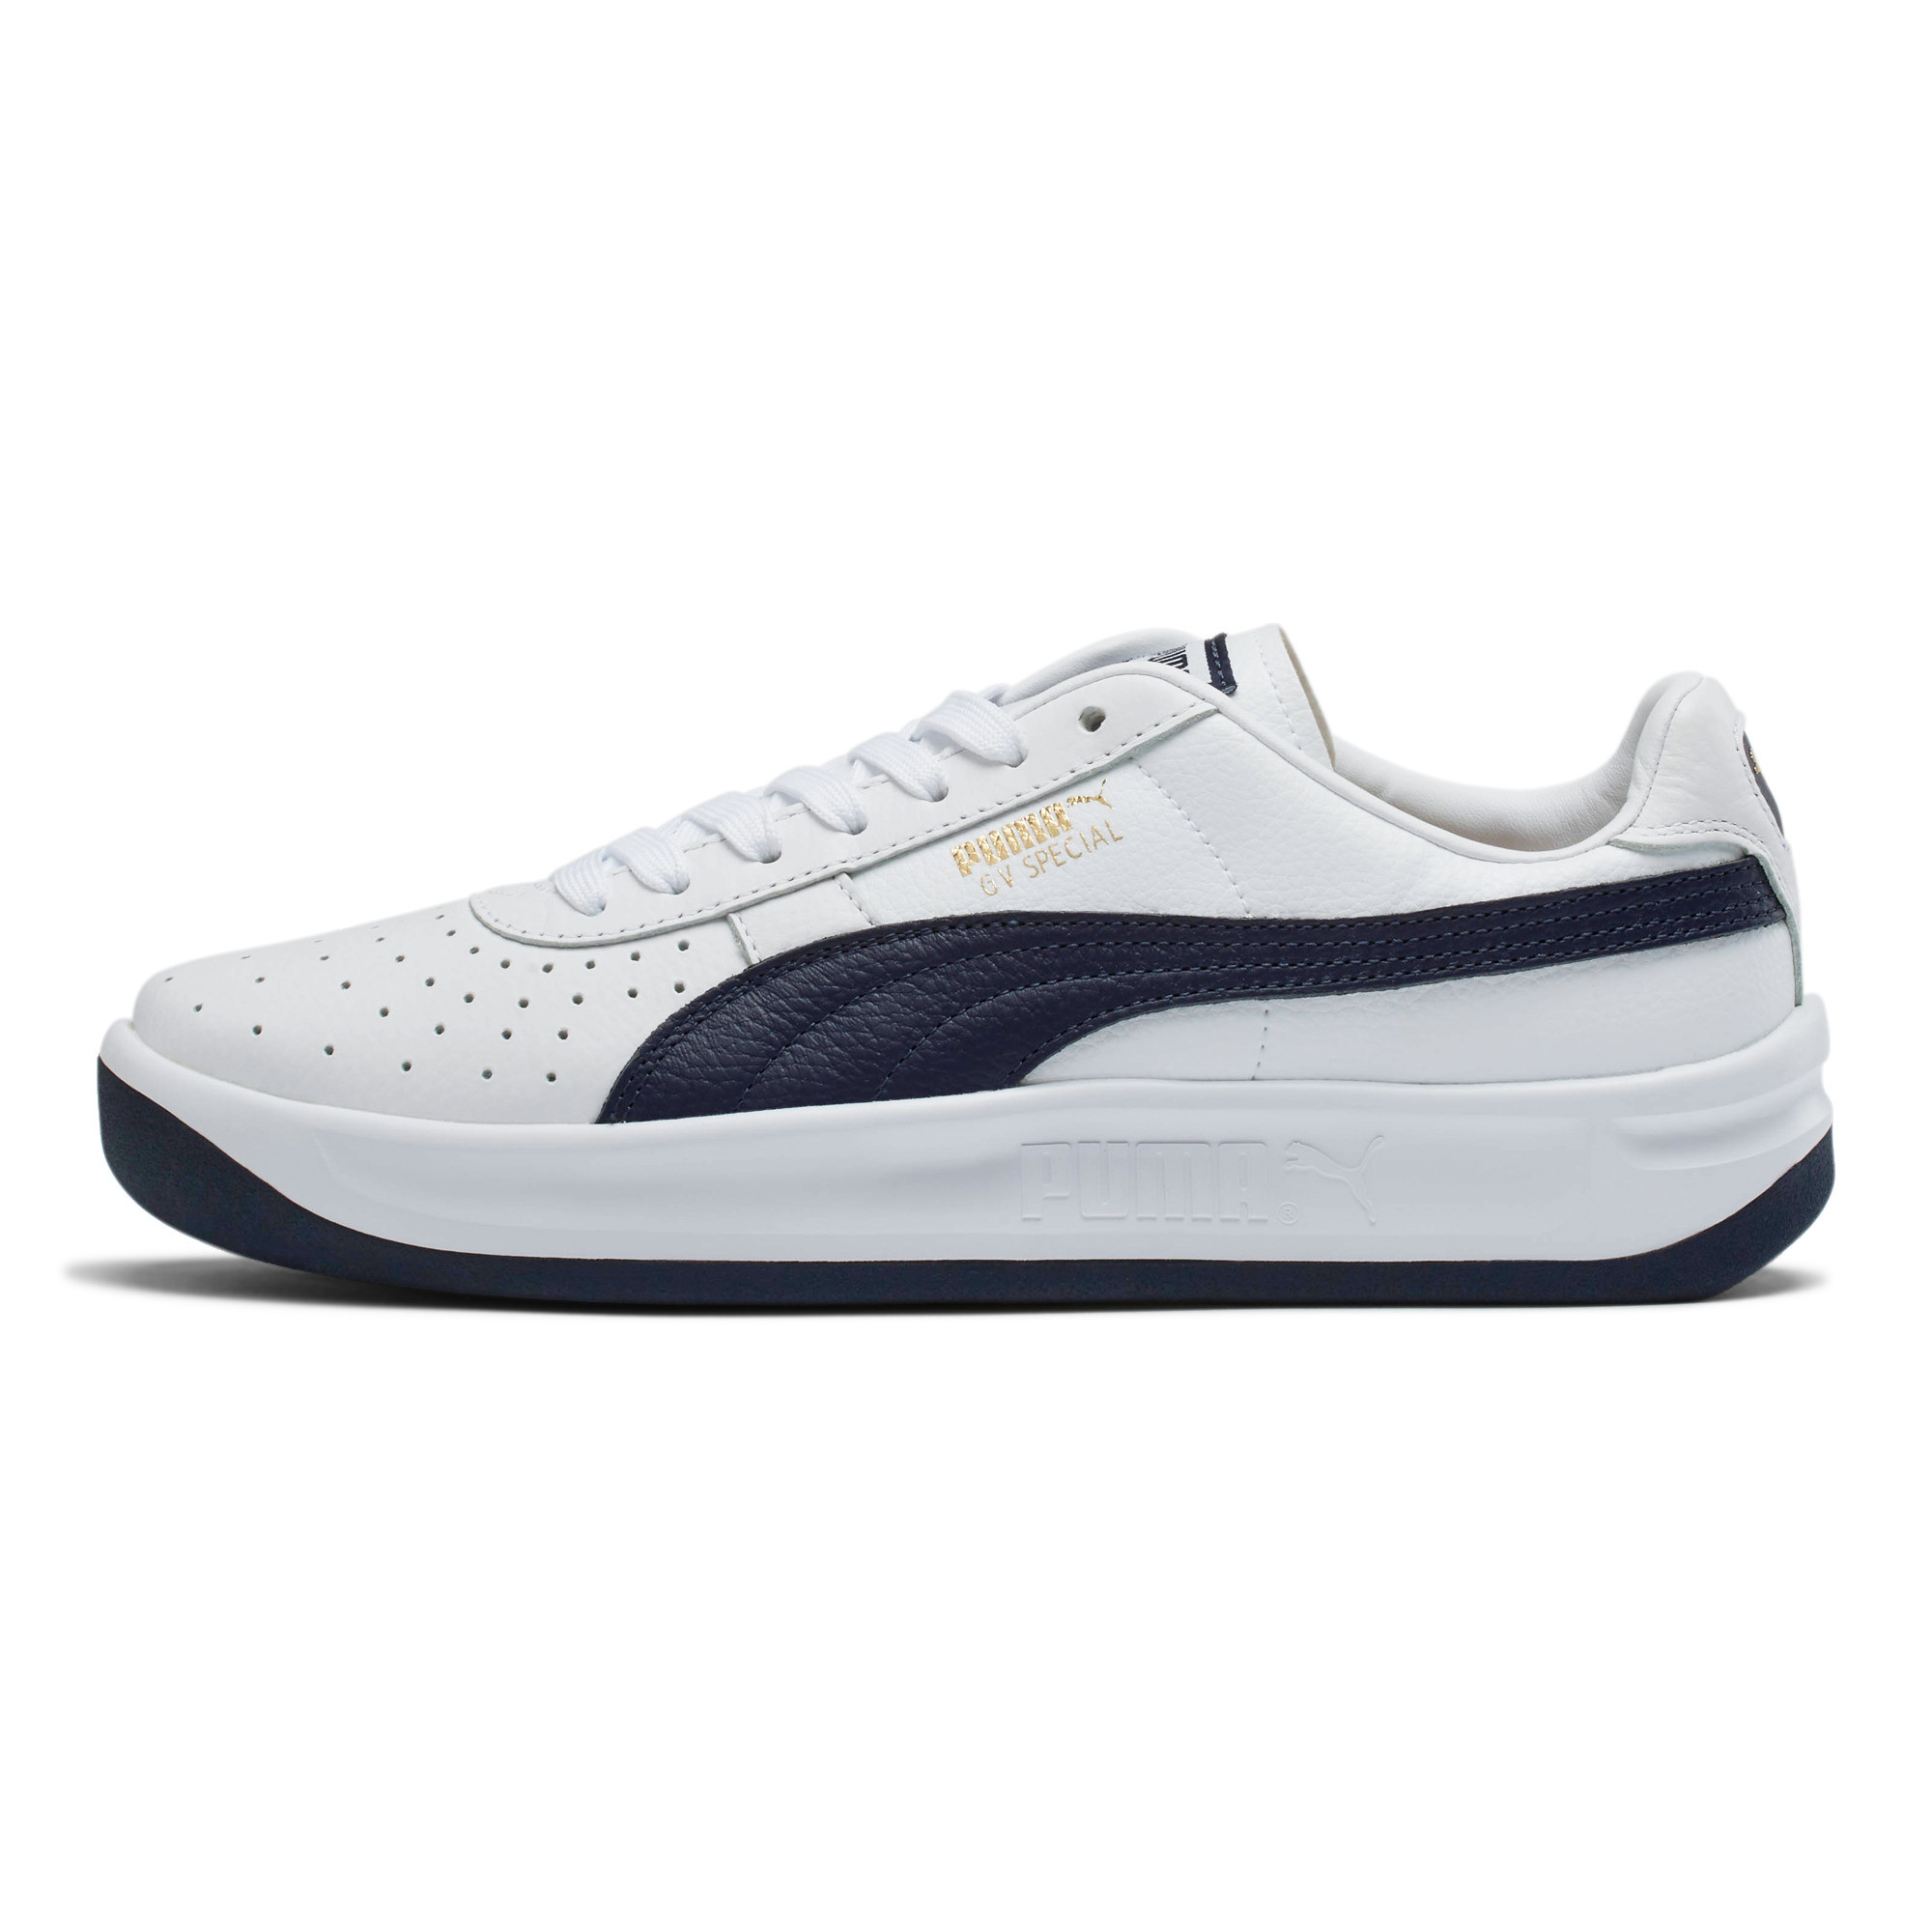 PUMA-Men-039-s-GV-Special-Sneakers thumbnail 4